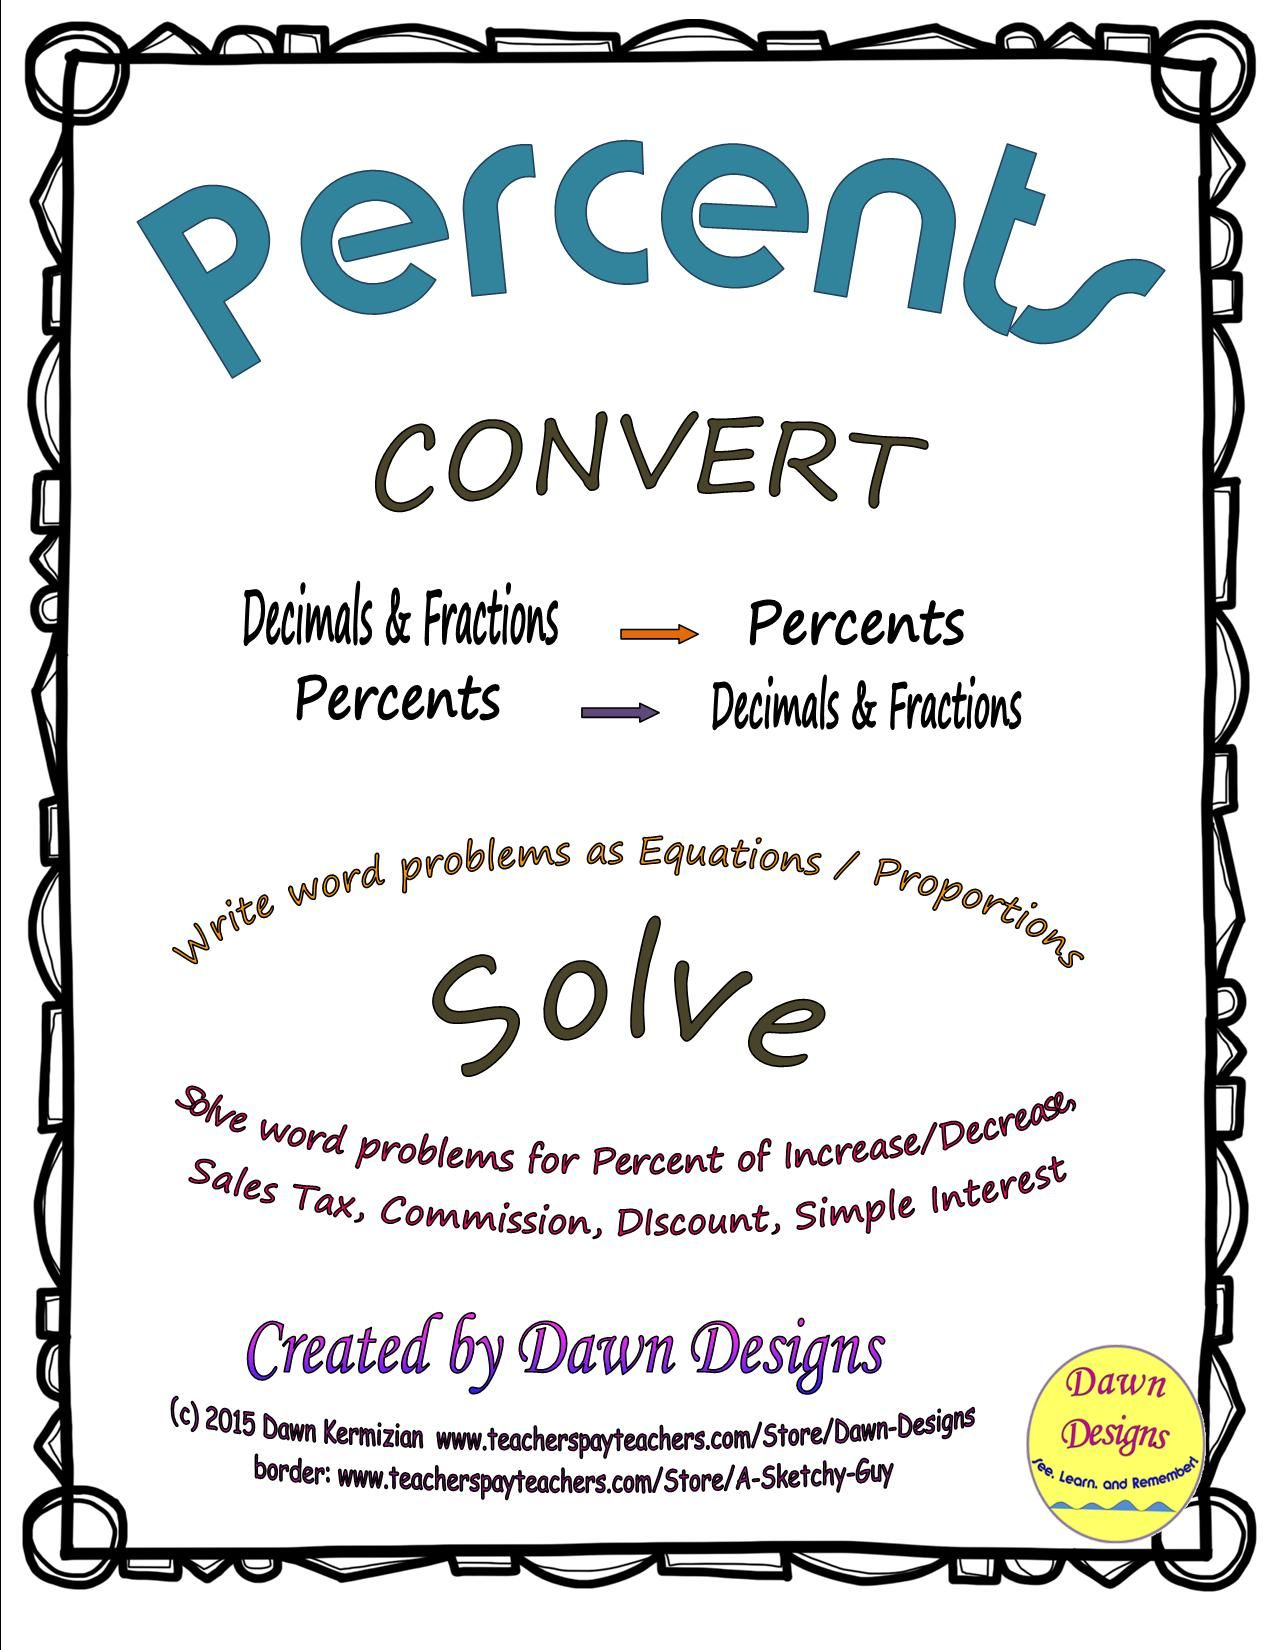 Percents Convert Decimals Fractions Solve Using